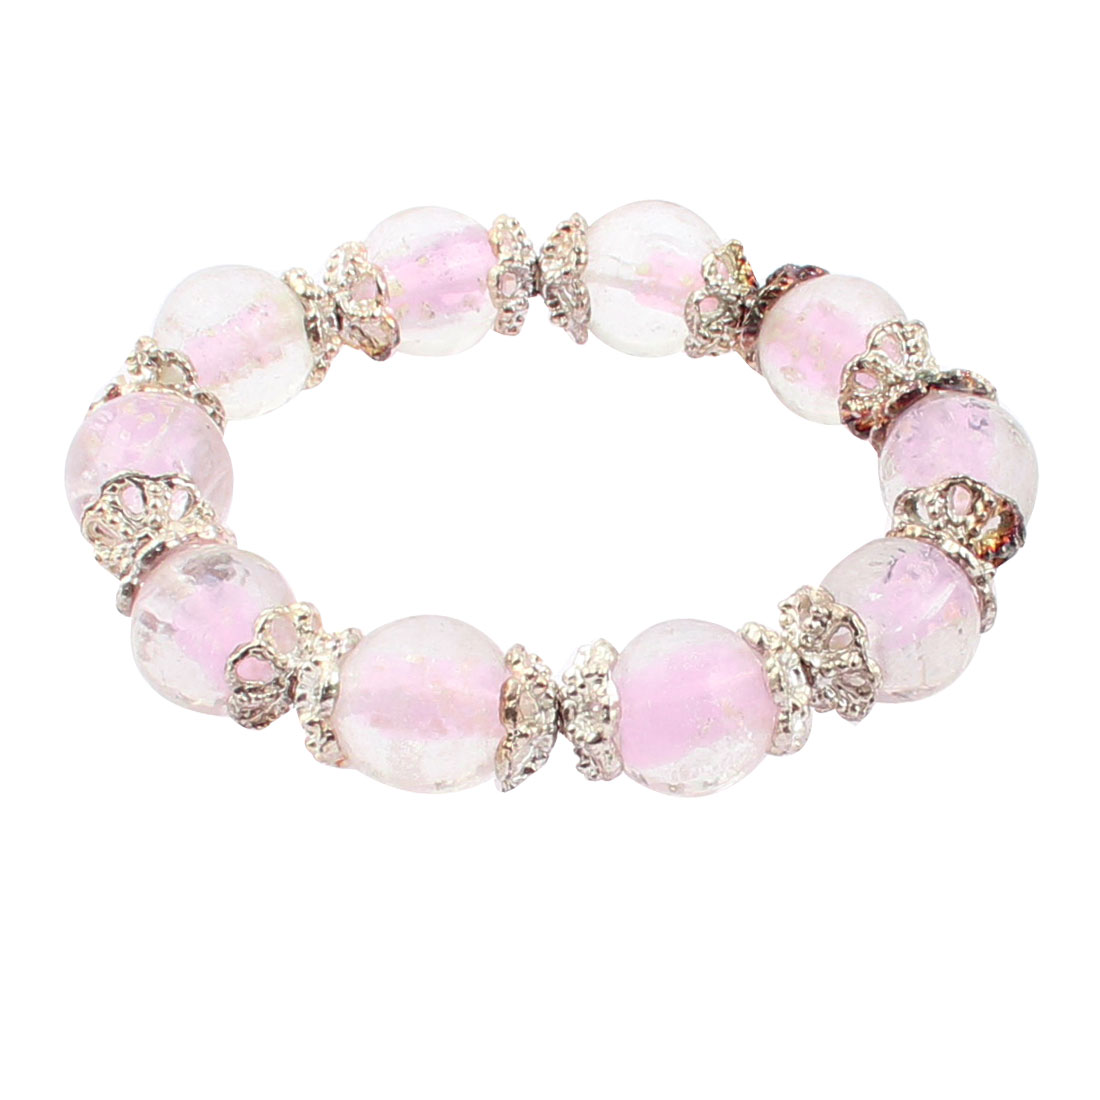 Woman Plastic Luminous Beaded Round Balls Flower Decor Elastic Rope Bracelet Pale Pink